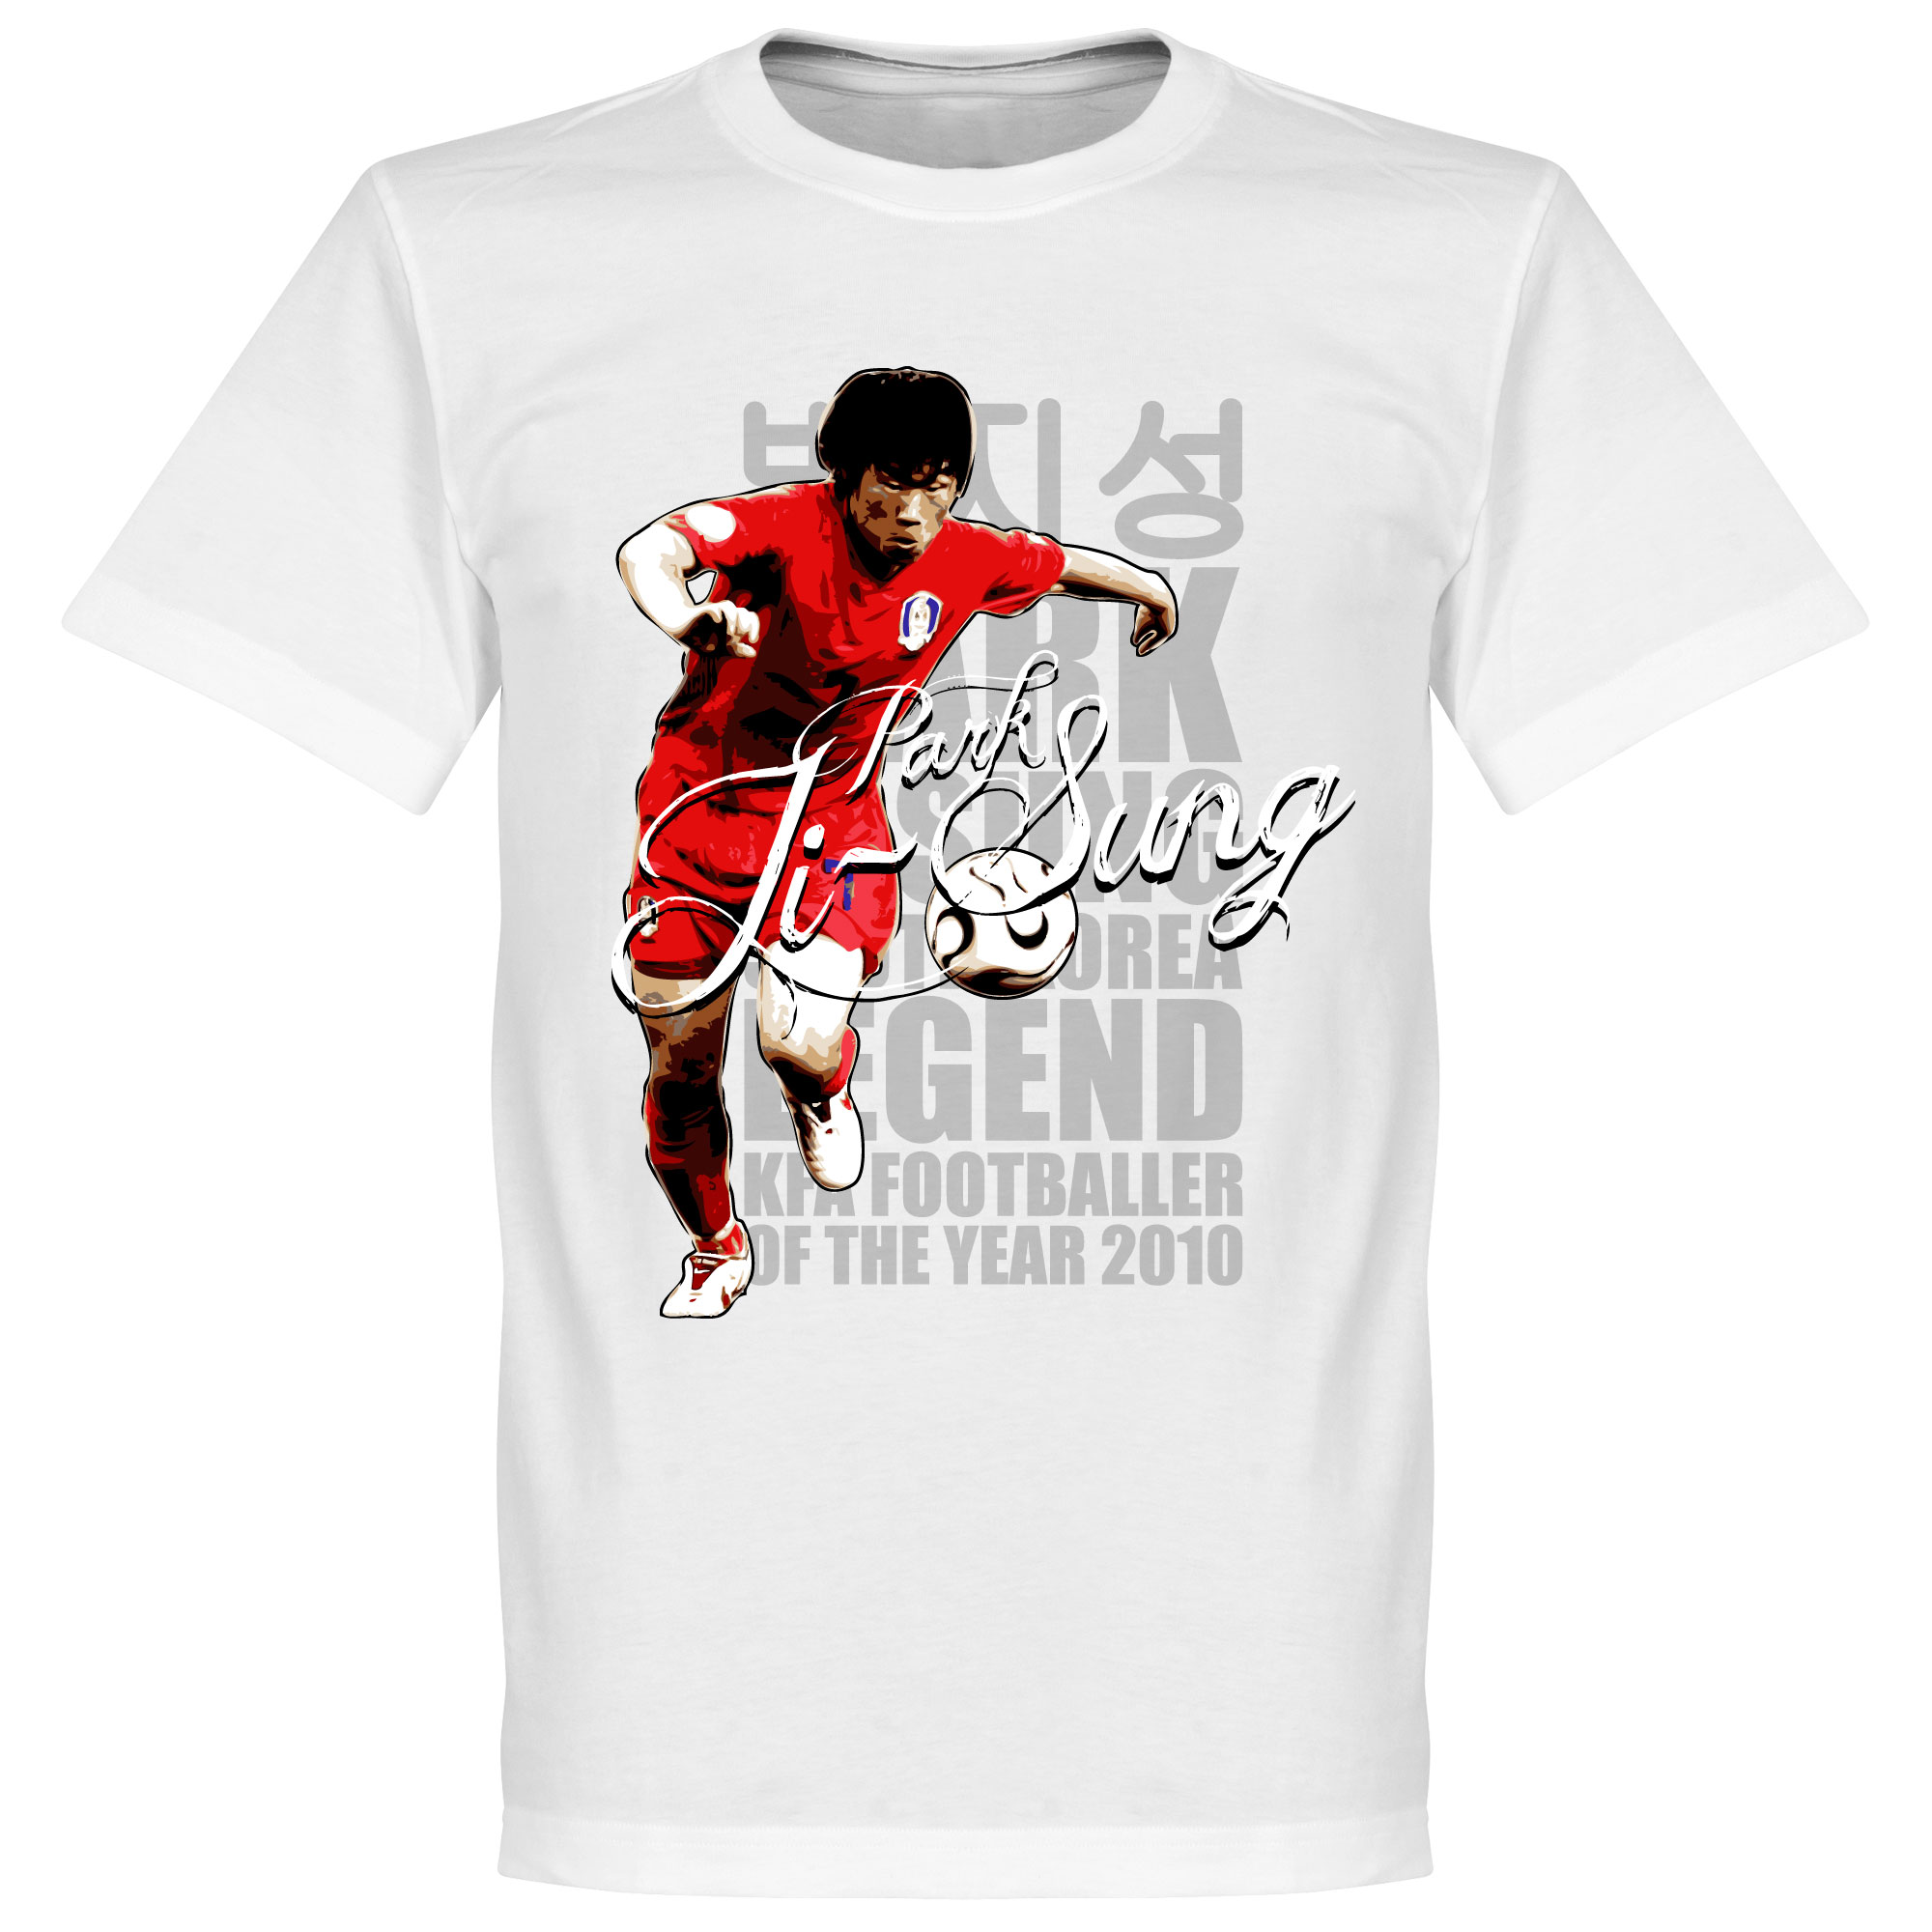 Ji Sung Park Legend Tee - White - L